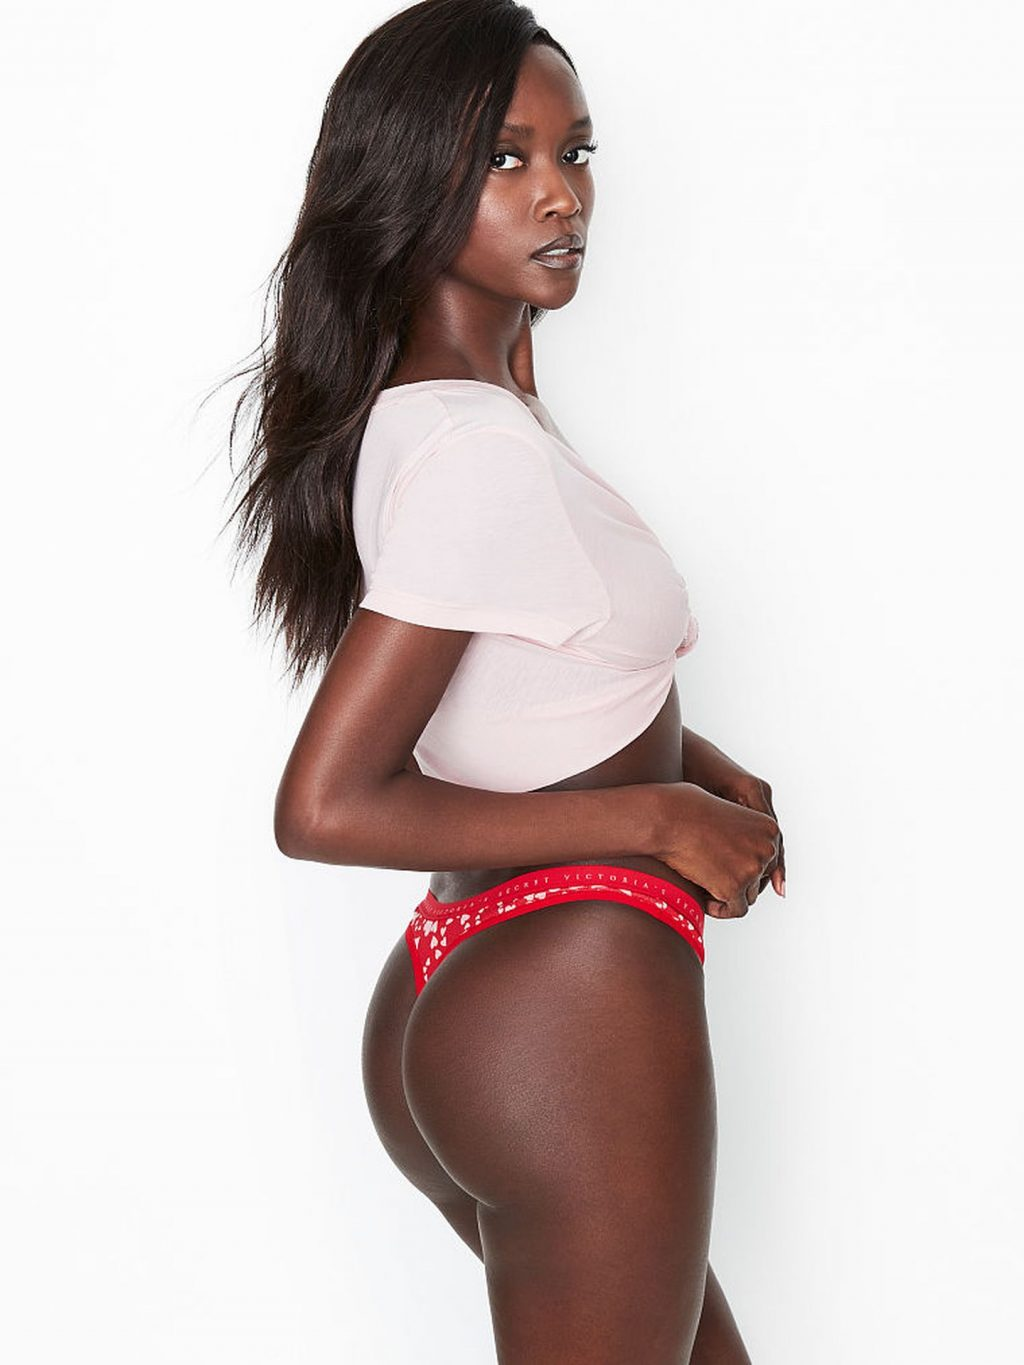 Riley Montana Sexy & Topless (97 Photos)